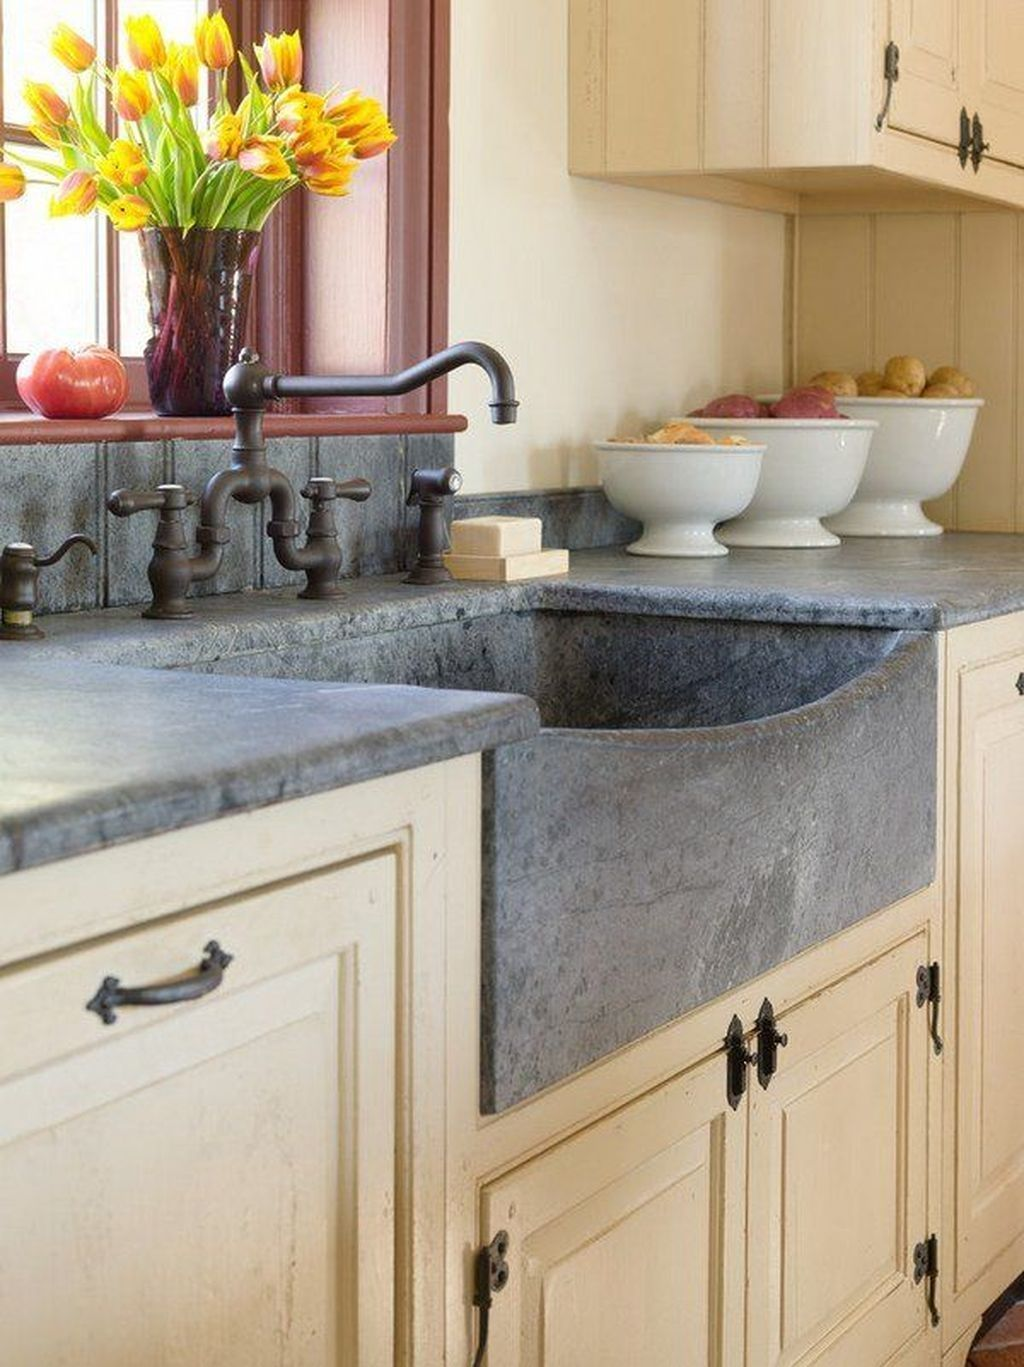 99 Gorgeus Farmhouse Kitchen Sink Design Ideas | Pinterest | Kitchen ...